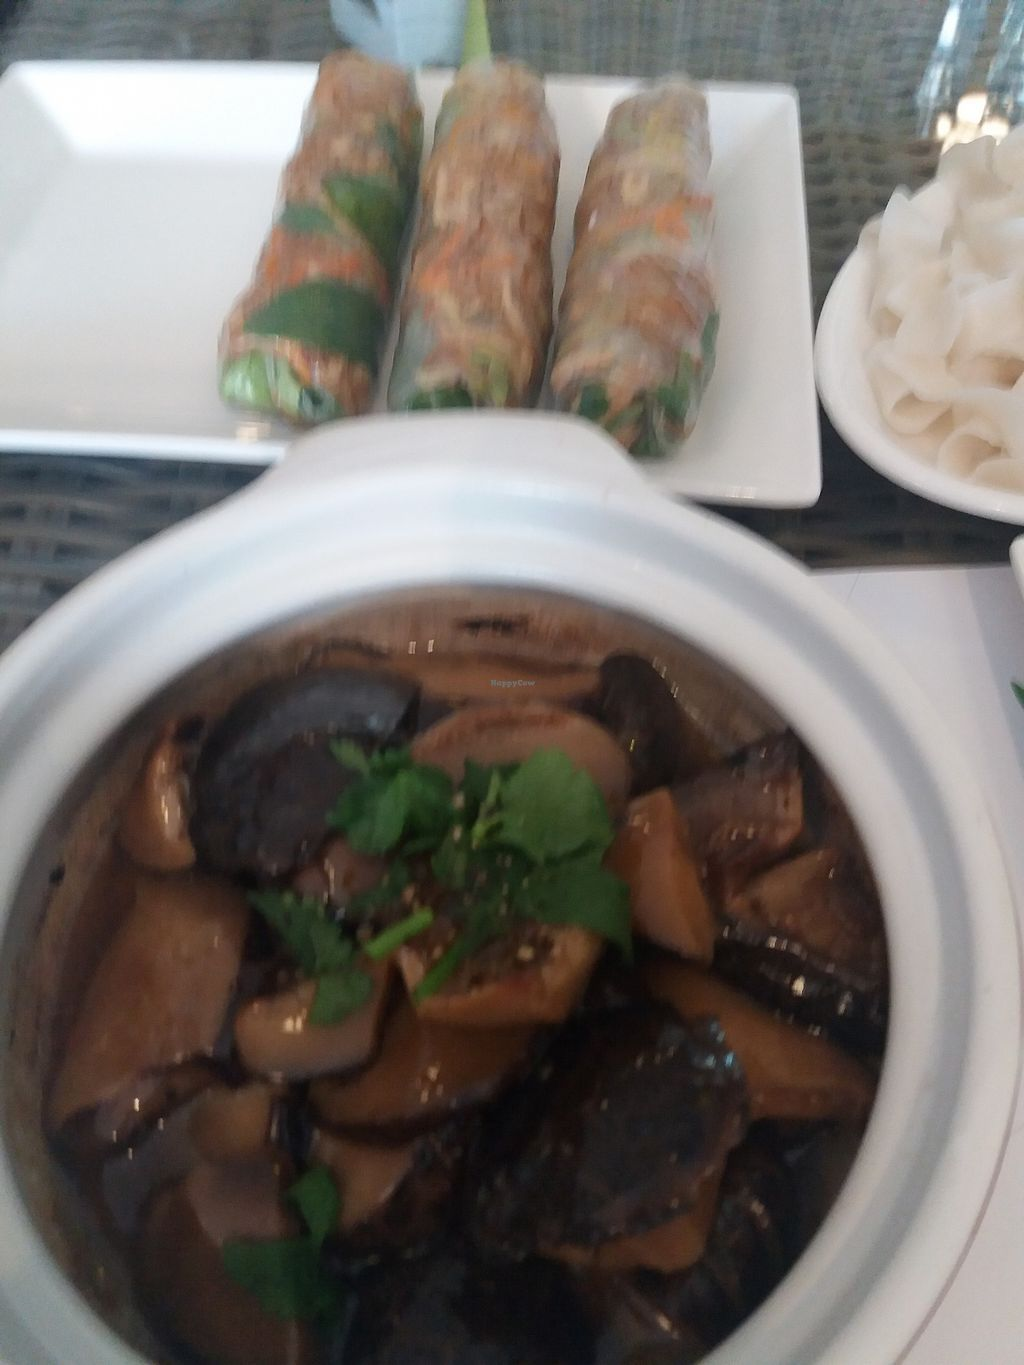 """Photo of Veggie House  by <a href=""""/members/profile/veganvirtues"""">veganvirtues</a> <br/>Baled shitake and fresh spring rolls <br/> September 16, 2017  - <a href='/contact/abuse/image/54113/304930'>Report</a>"""